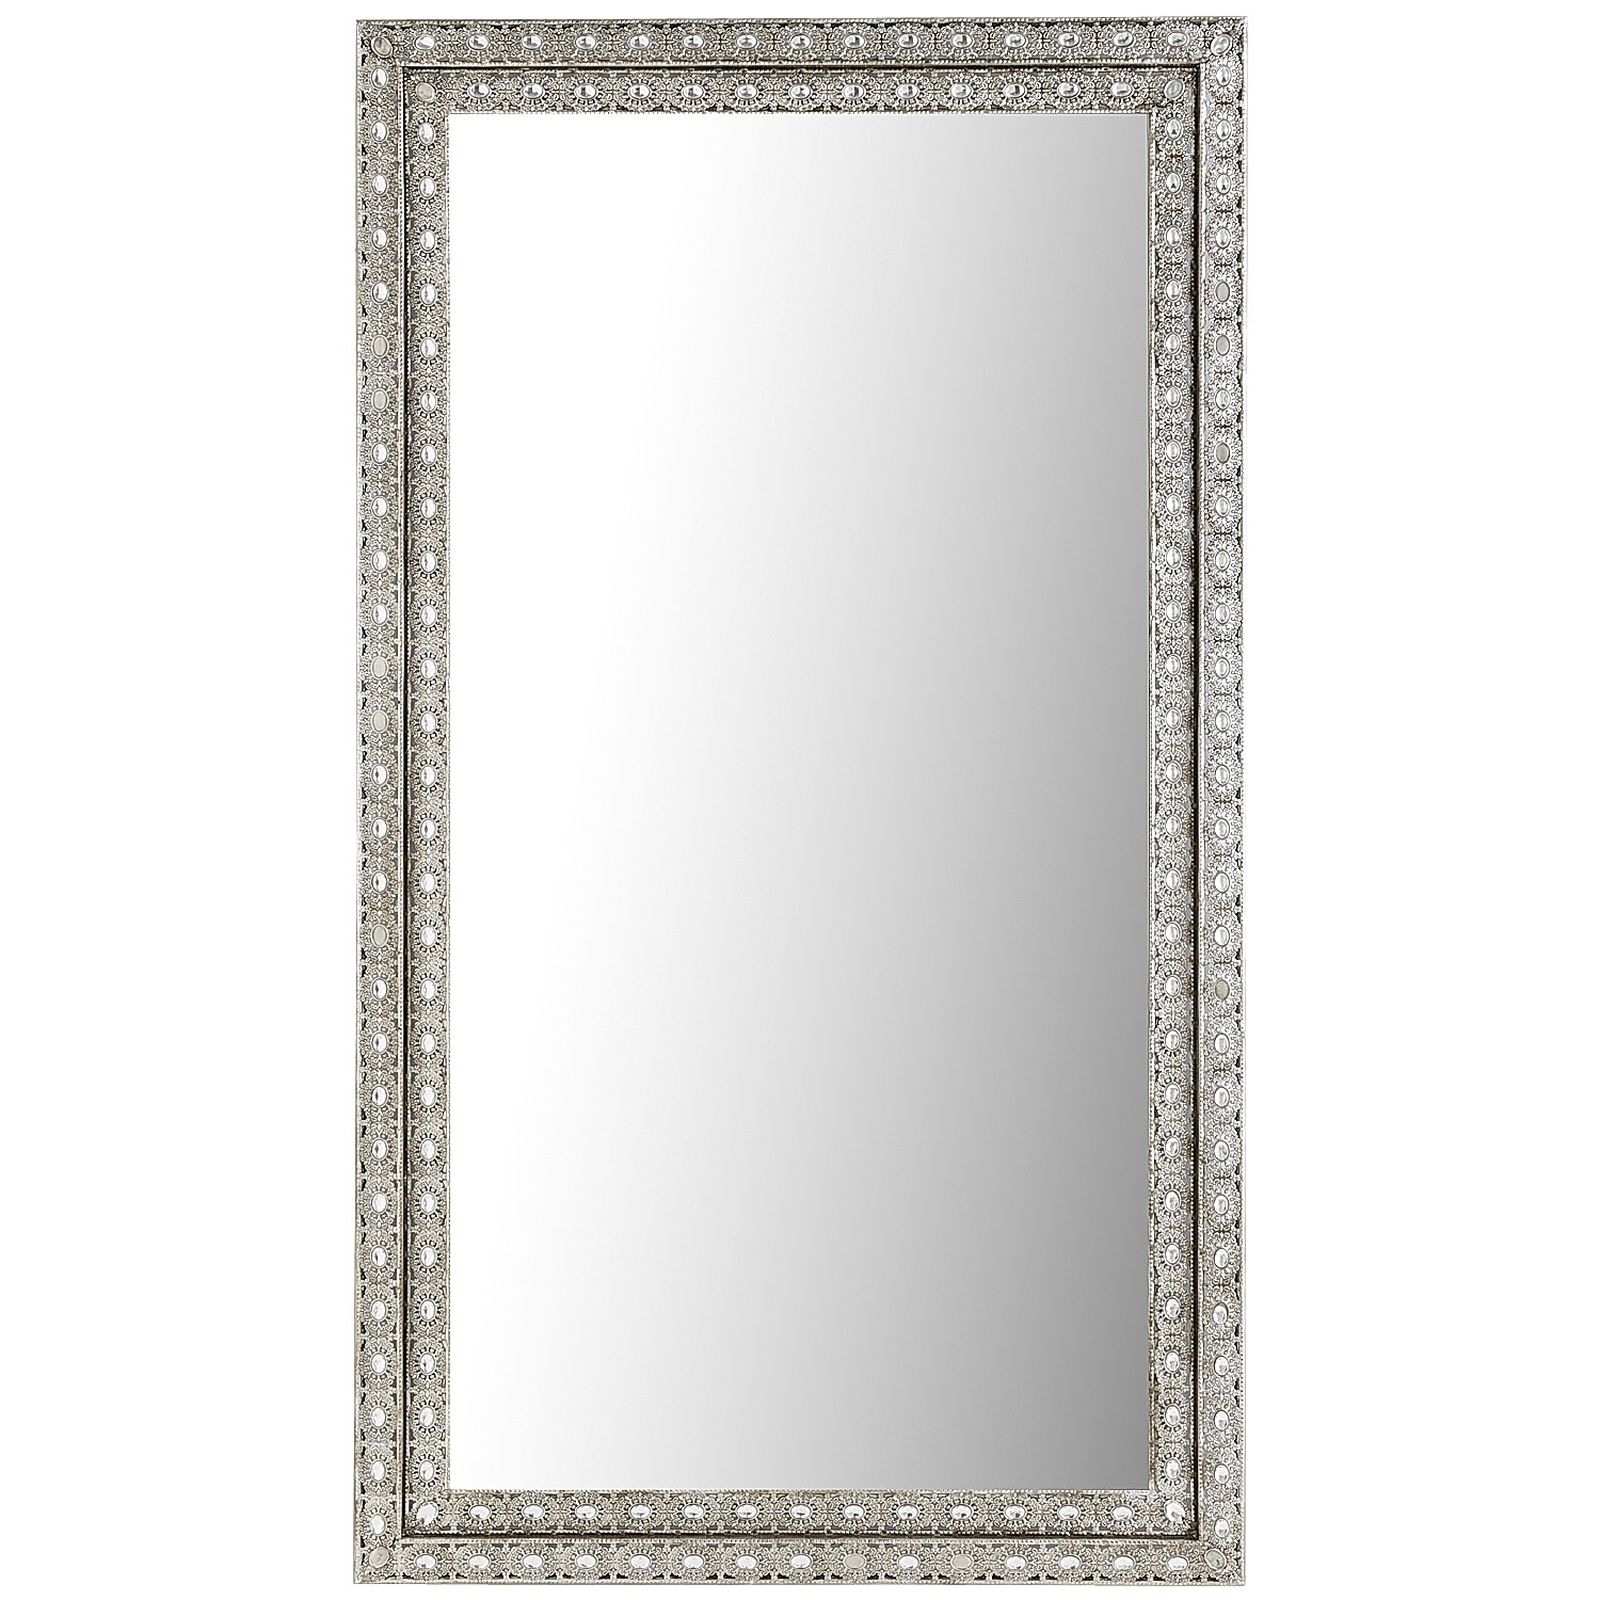 Pier one decorative mirrors